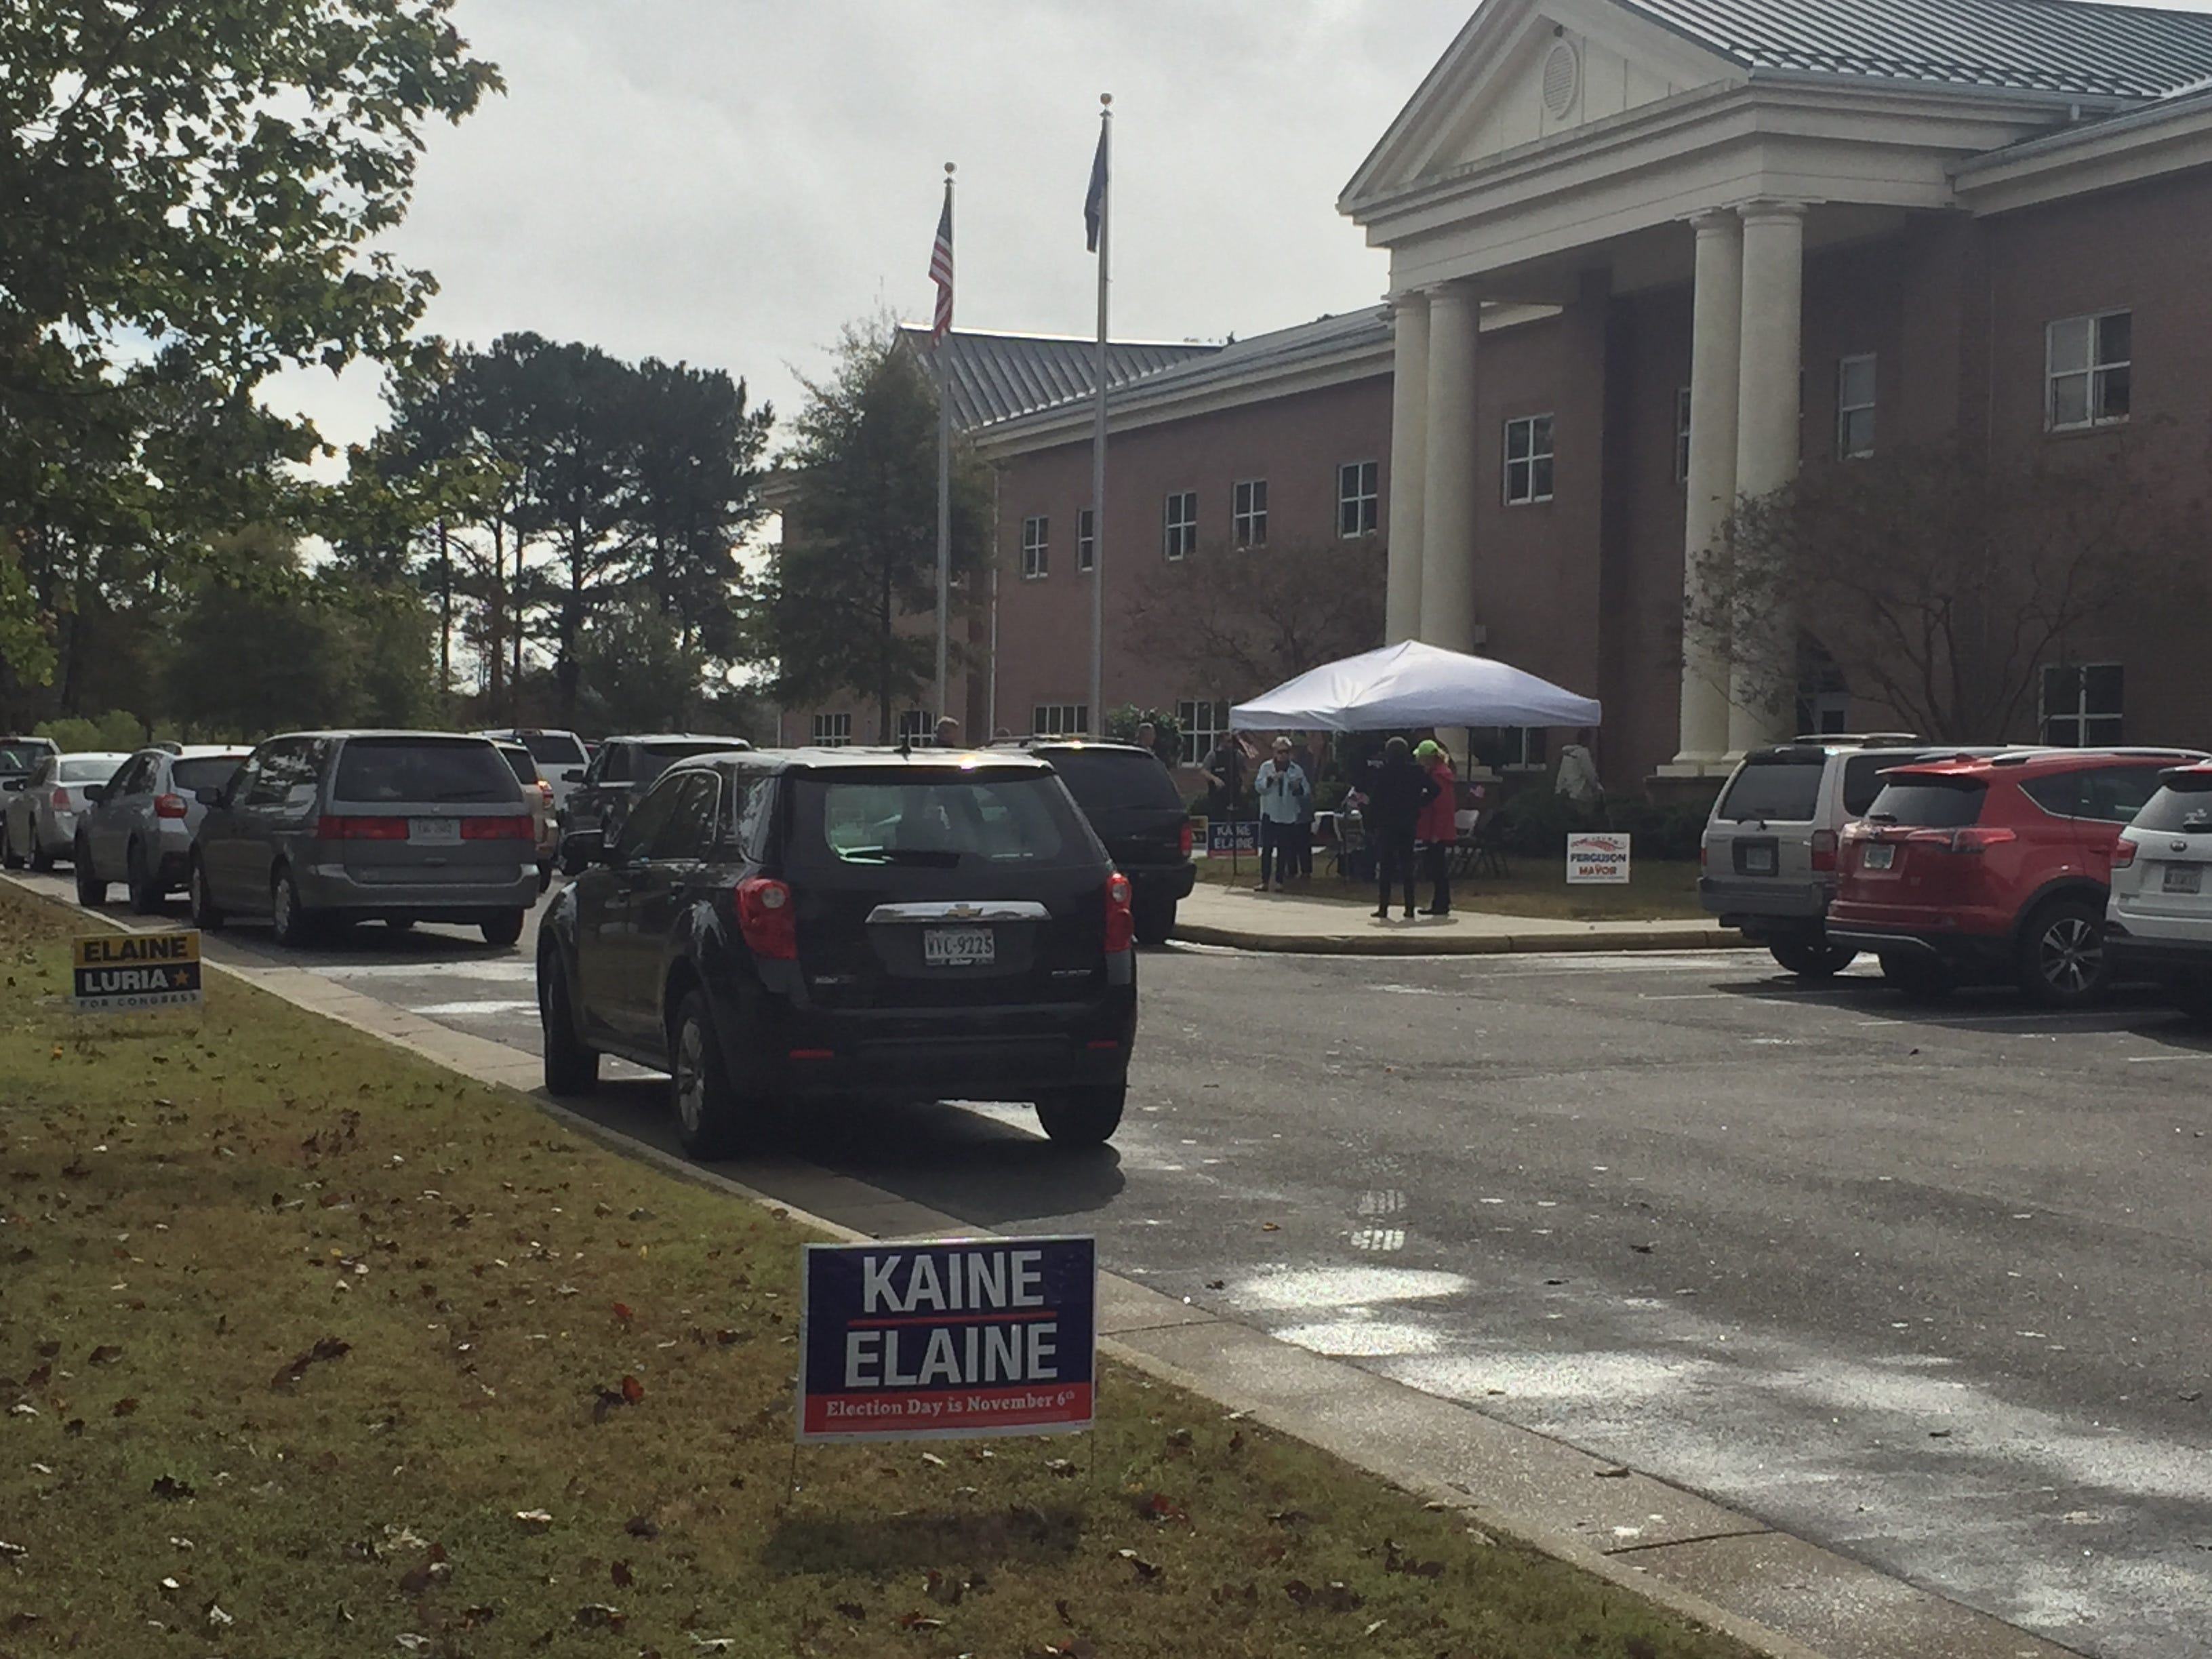 The polling place at Nandua Middle School in Onley, Virginia is bustling around noon on Election Day, Tuesday, Nov. 6, 2018.